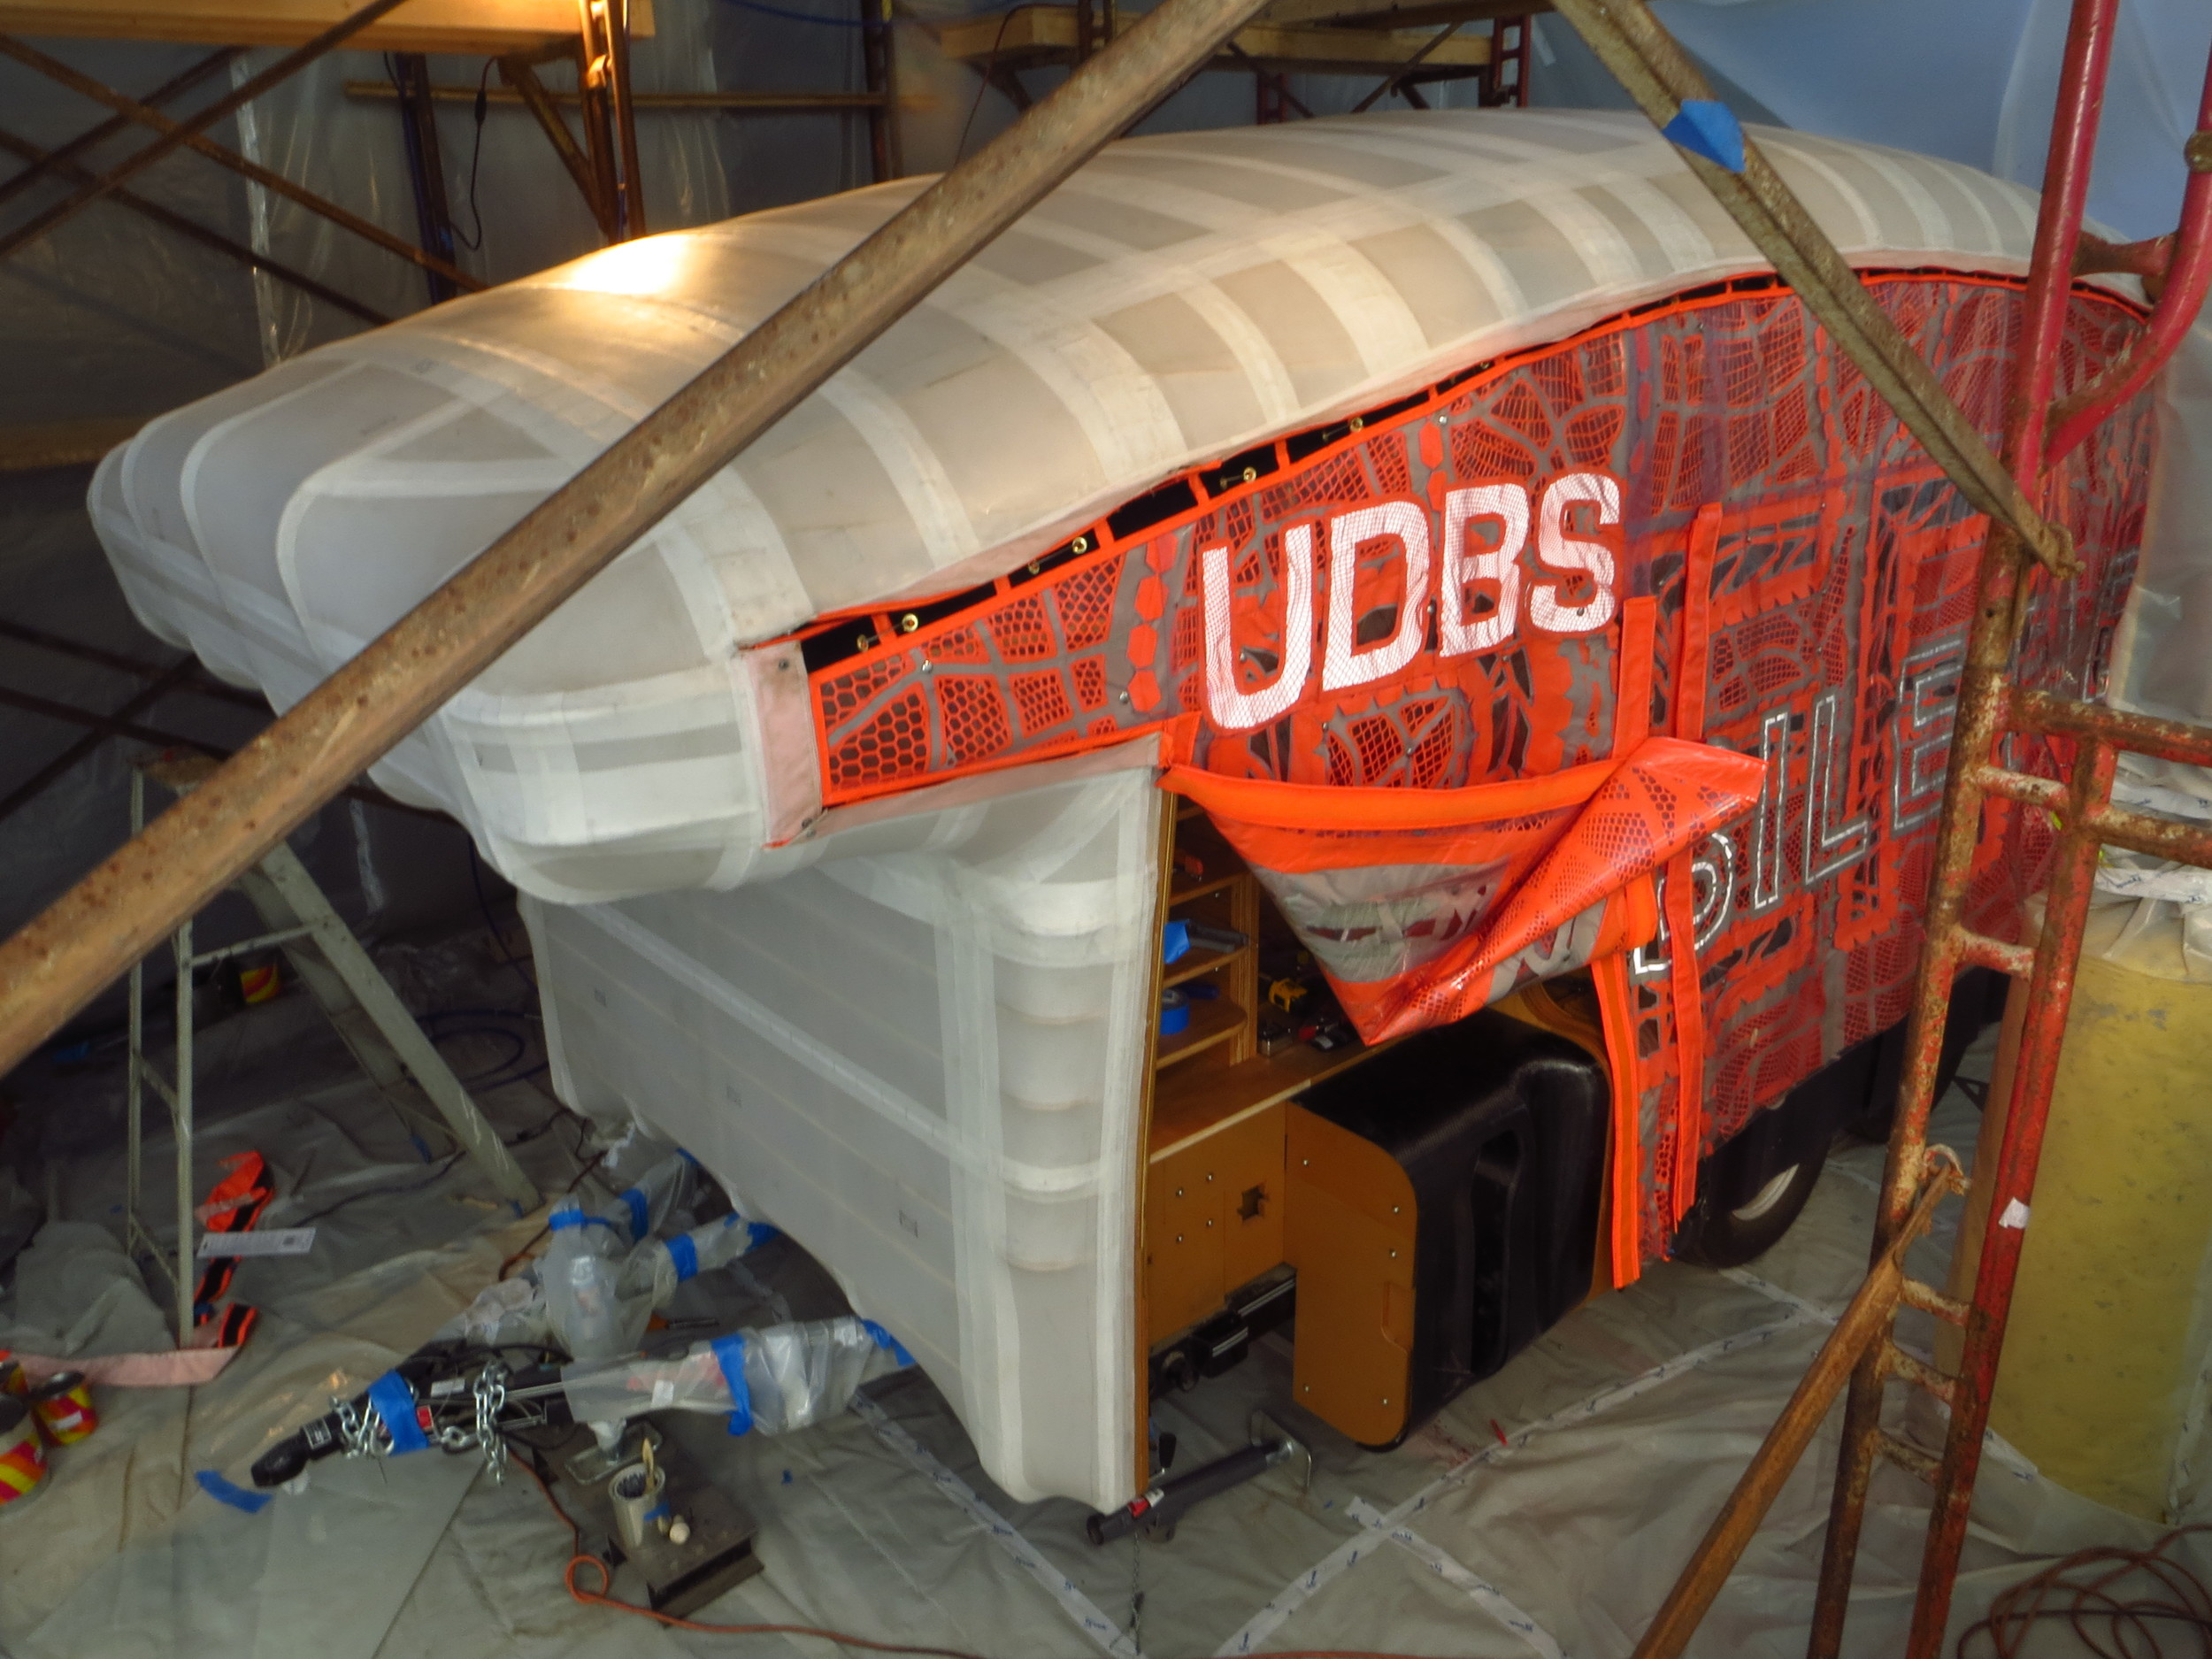 Poly-fiber roof fabric was patterned, adhered, stitched to ribs, and coated with weatherproofing and paint.